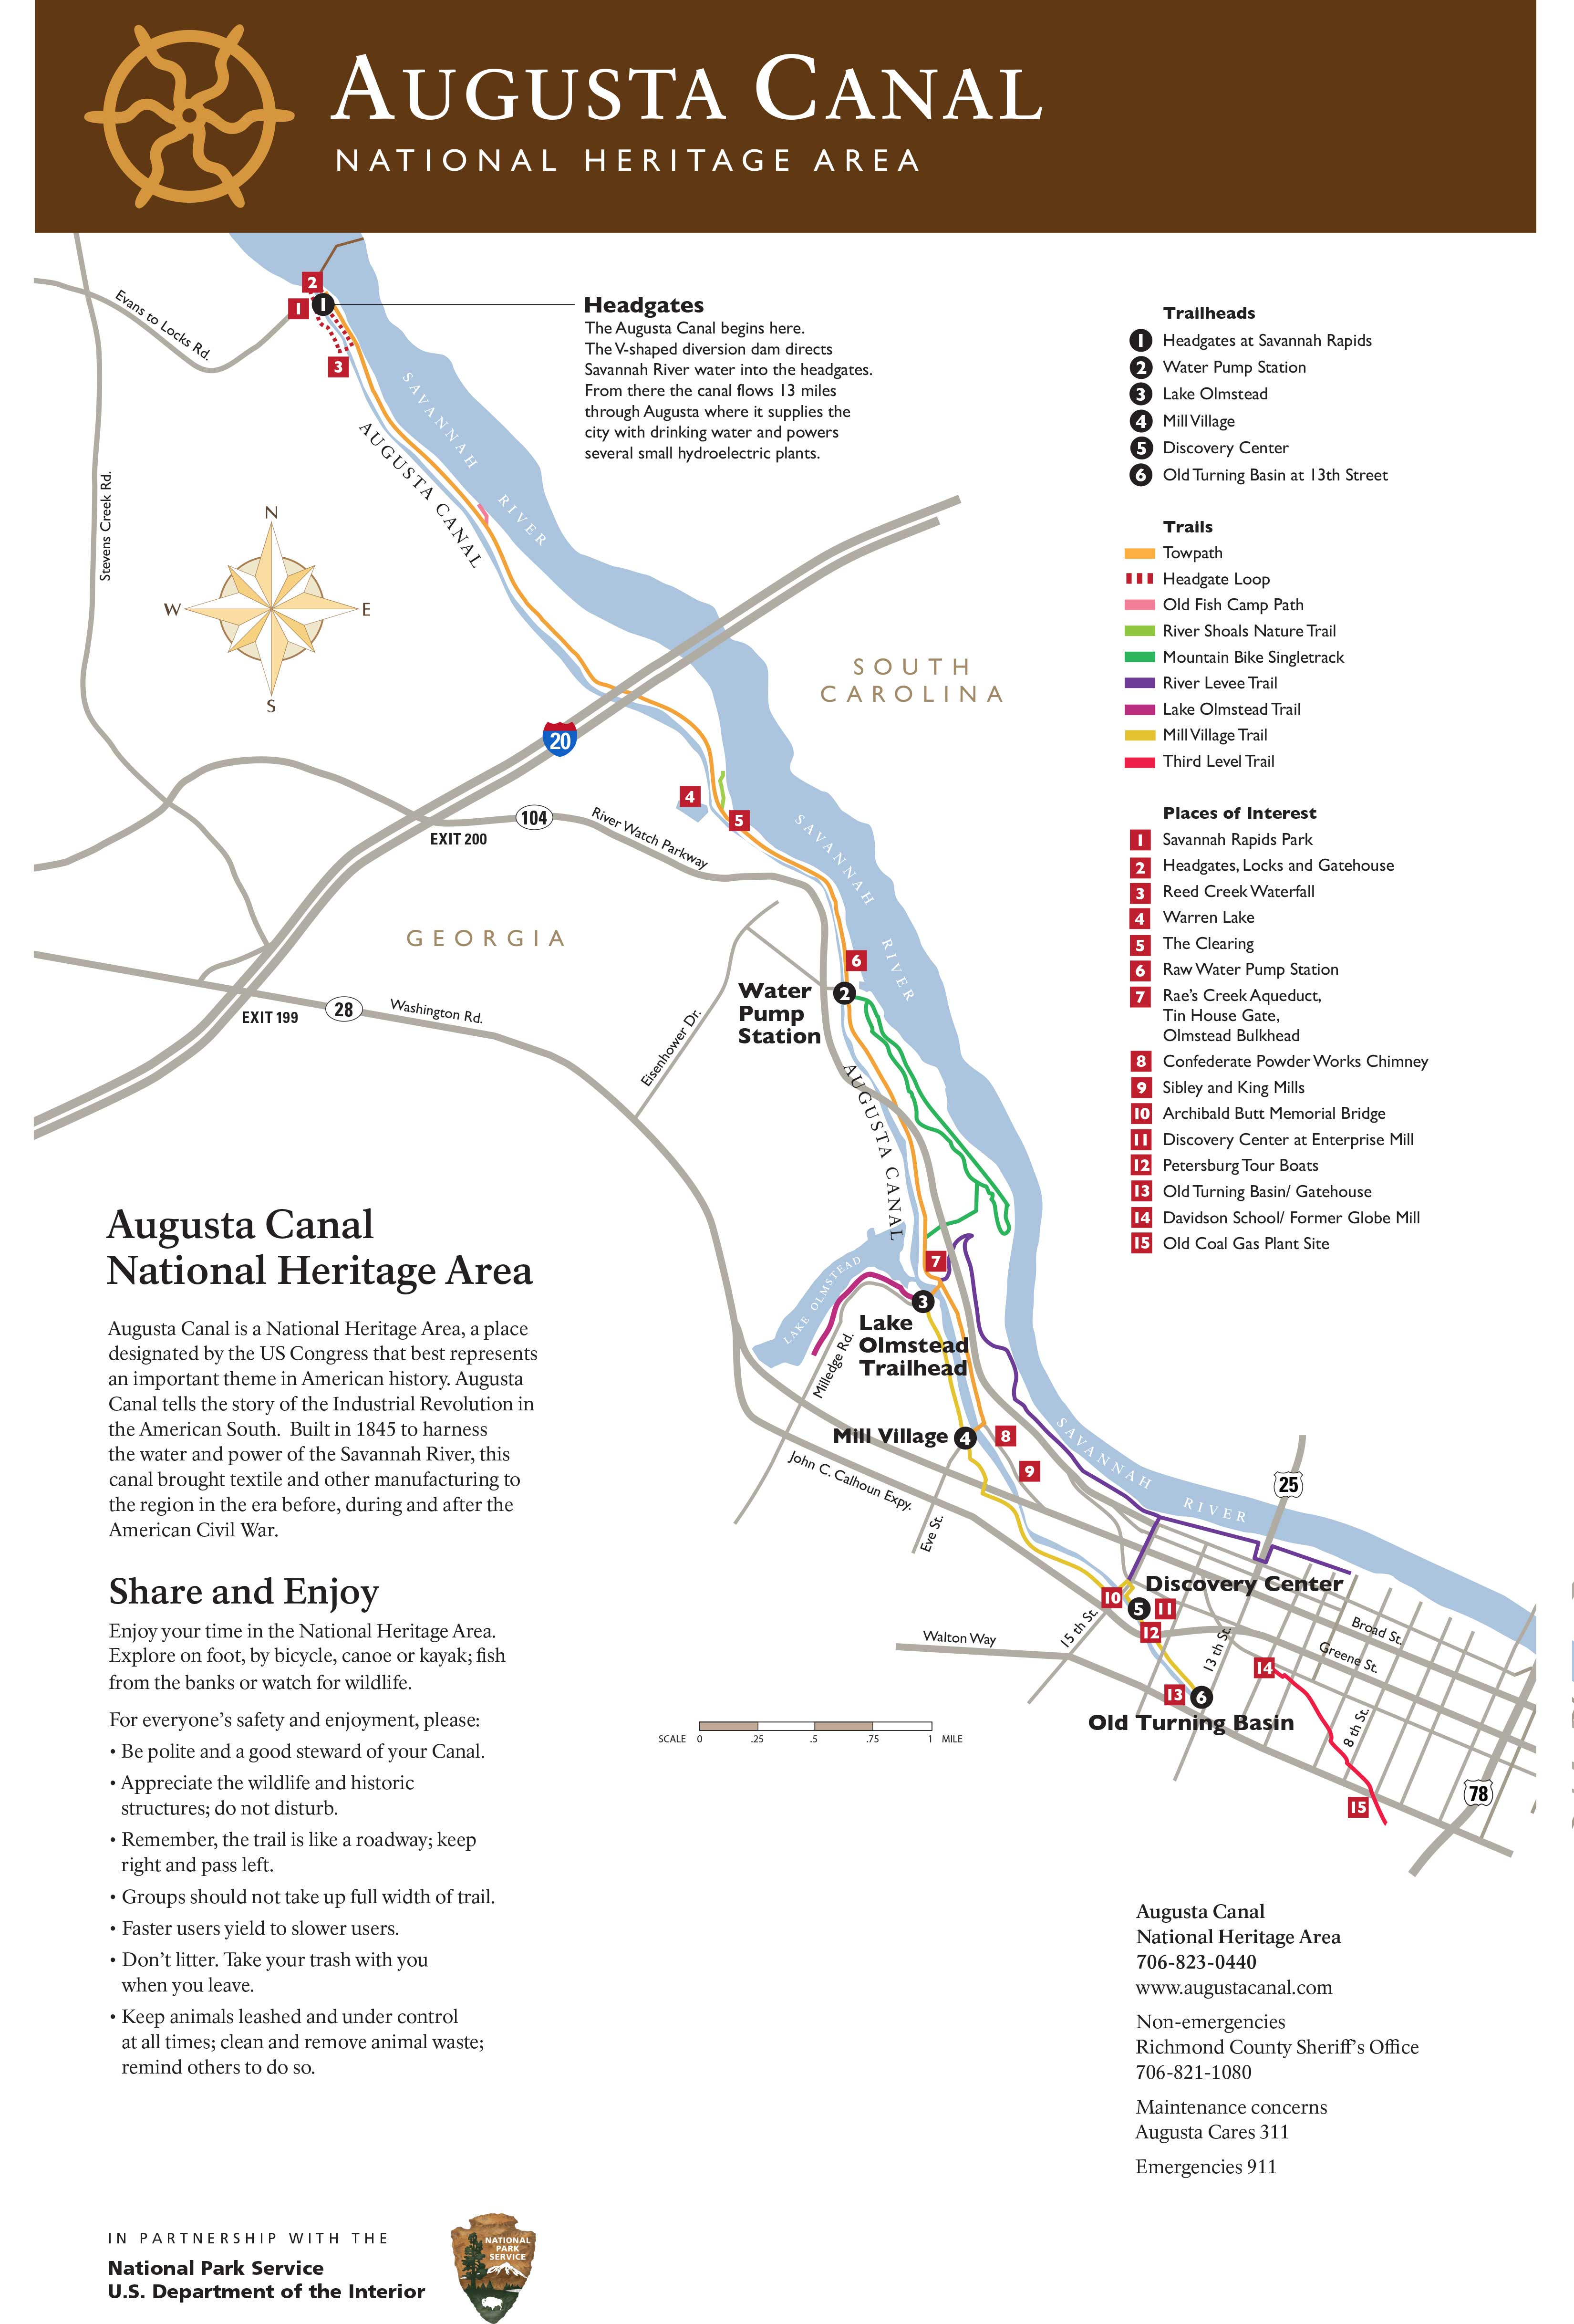 Augusta C on columbia river on us map, susquehanna river on a us map, platte river on a us map, james river on a us map, tennessee river on a us map, potomac river on a us map, arkansas river on a us map, missouri river on a us map, savannah river site map, delaware river on a us map, sabine river on a us map, red river on us map, minnesota river on a us map, hudson river on a us map, rappahannock river on a us map, willamette river on a us map, sacramento river on a us map, mississippi river on a us map, cumberland river on a us map, suwannee river on a us map,